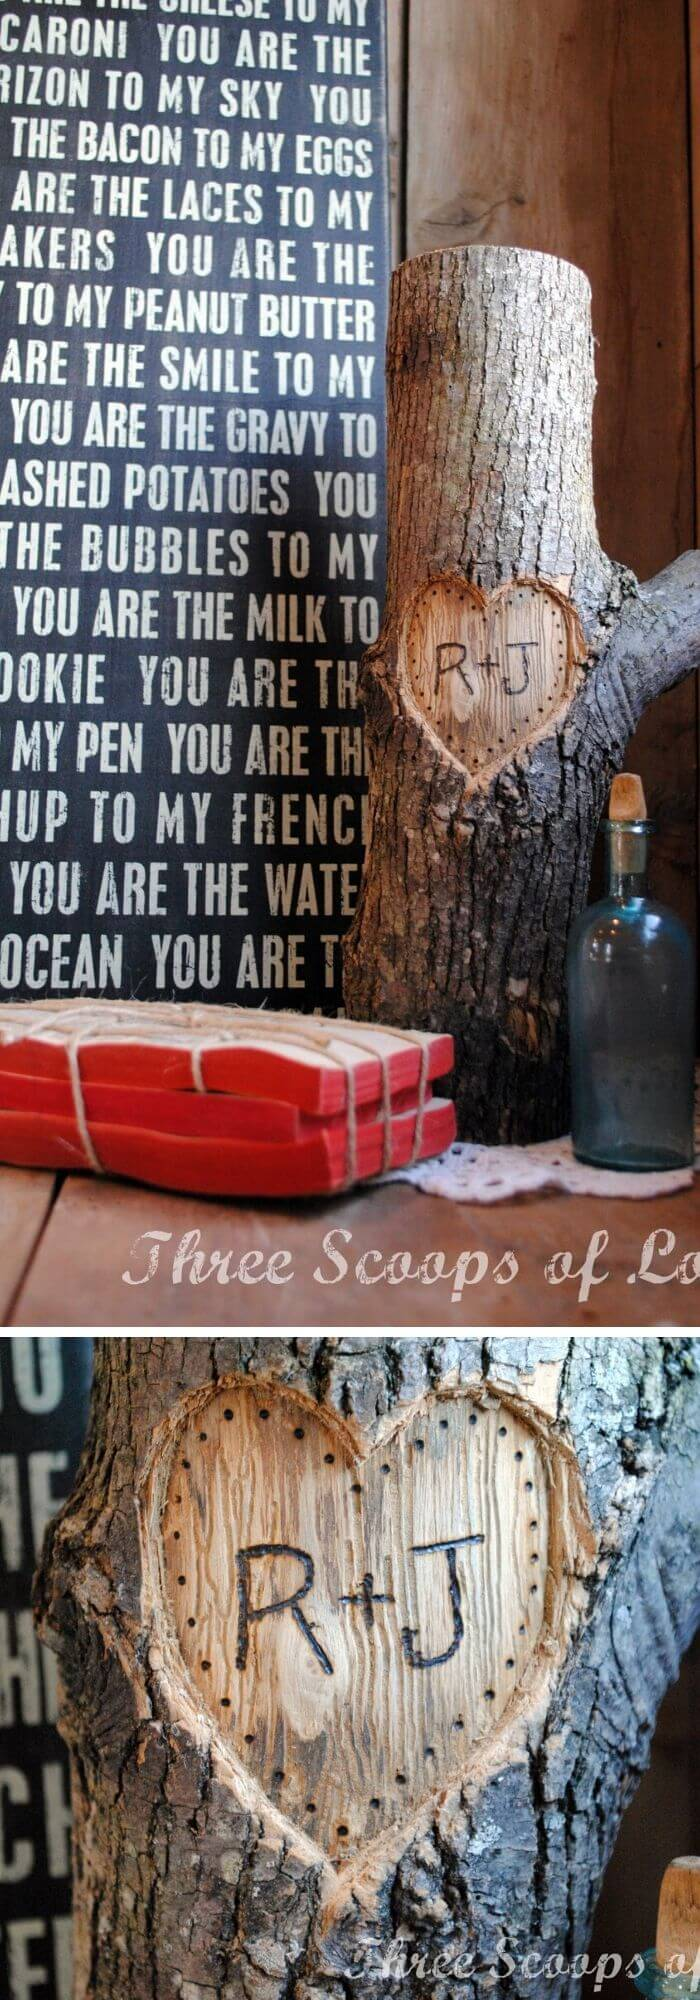 Love forever - Rustic Wood Heart Projects